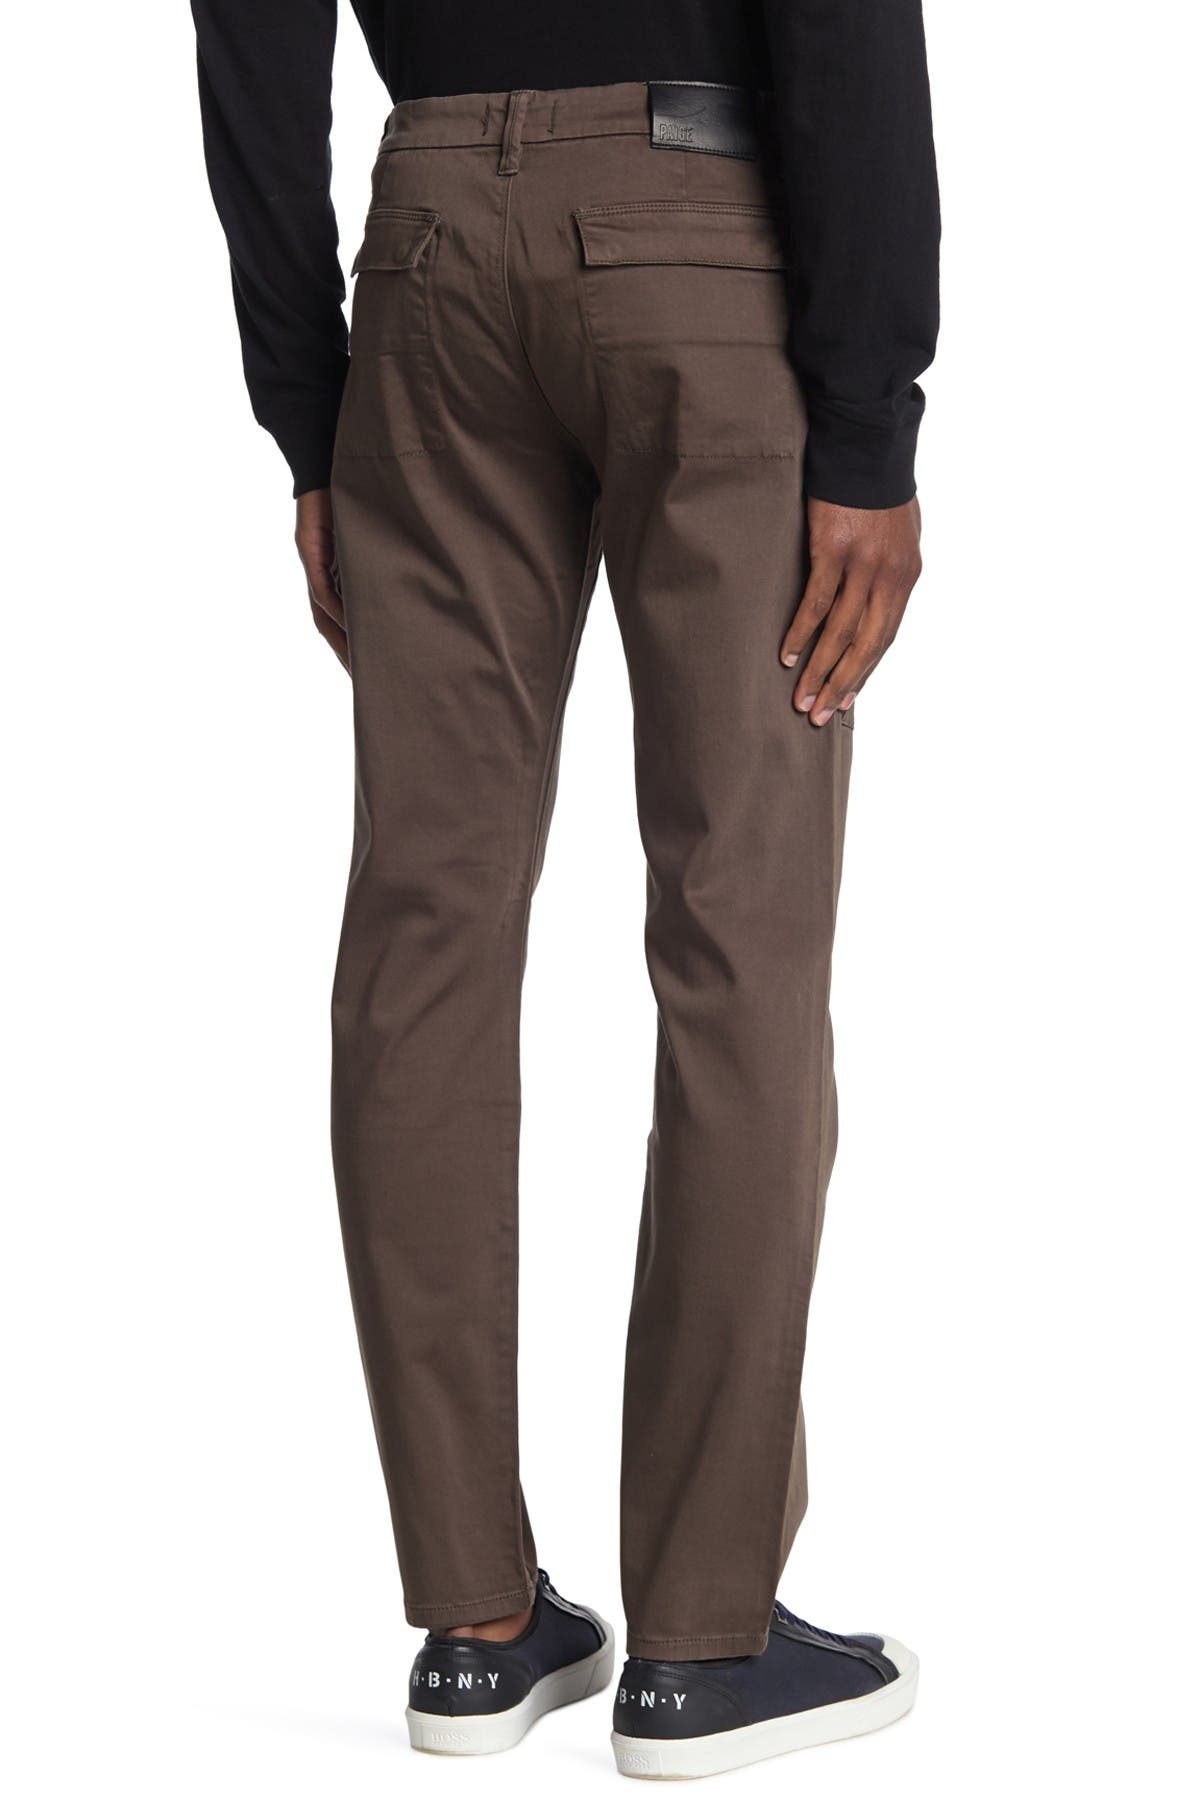 Image of PAIGE Dylan Cargo Pants